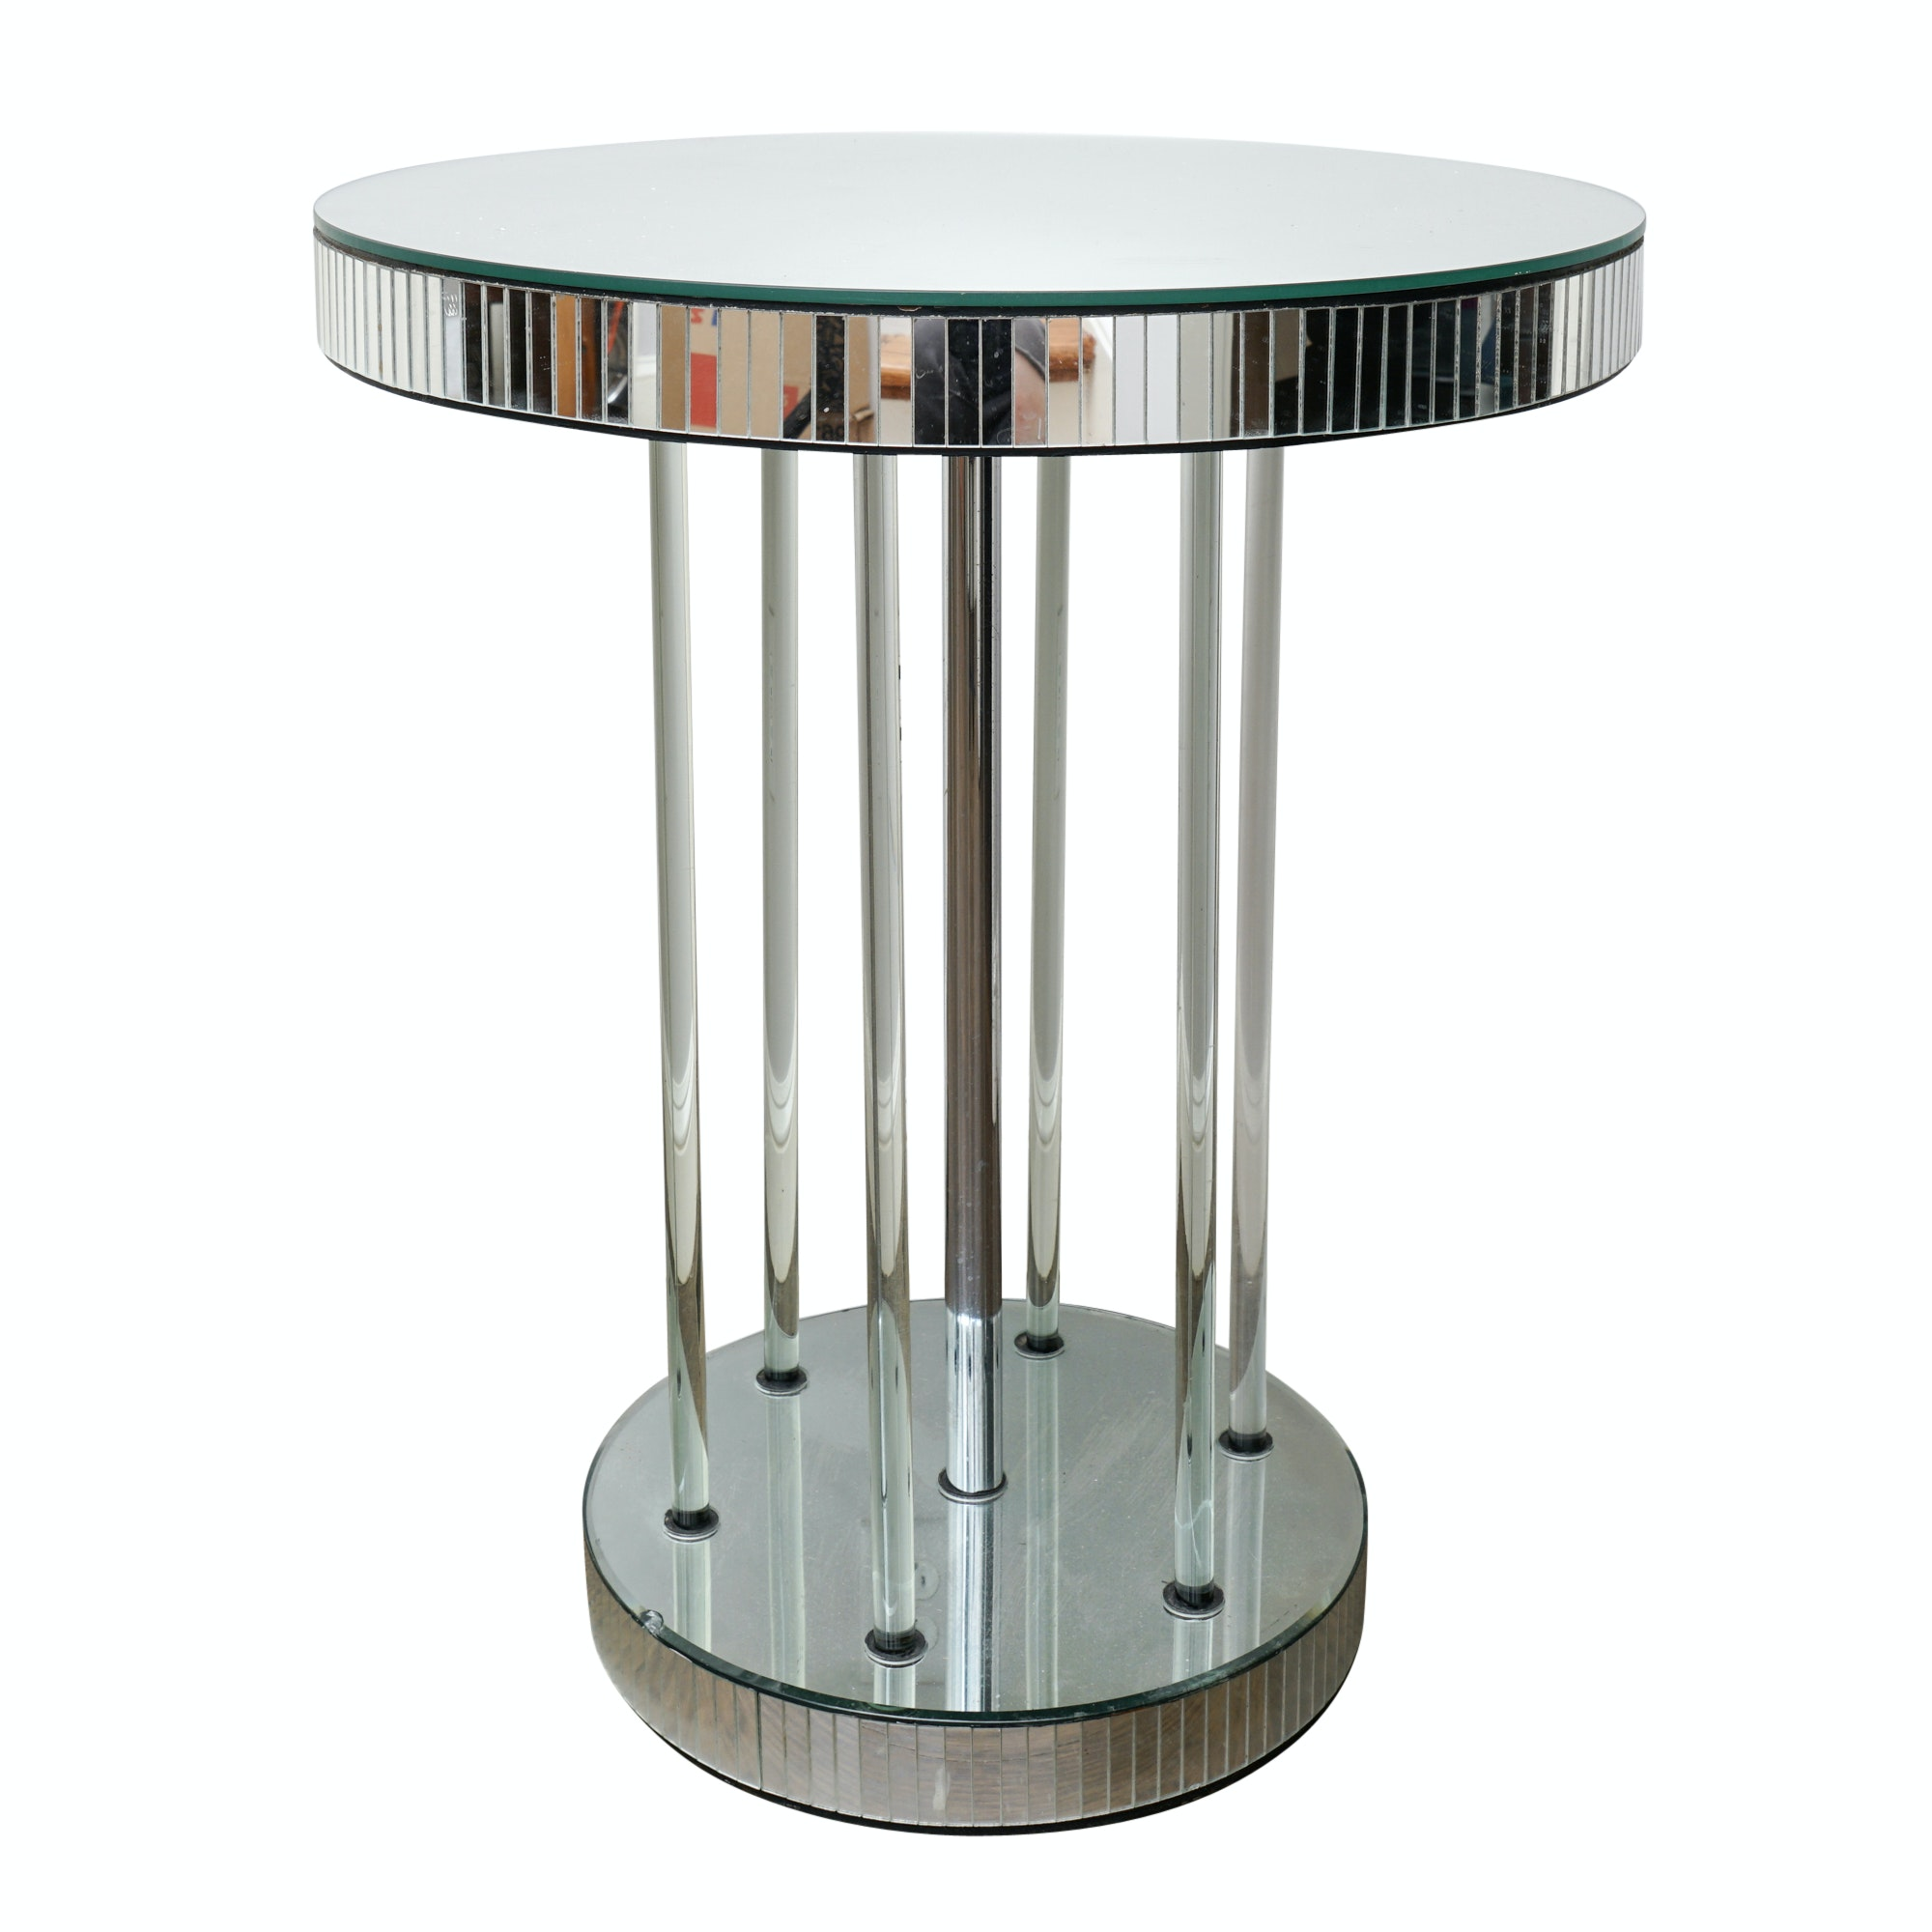 Mirrored Circular Accent Table